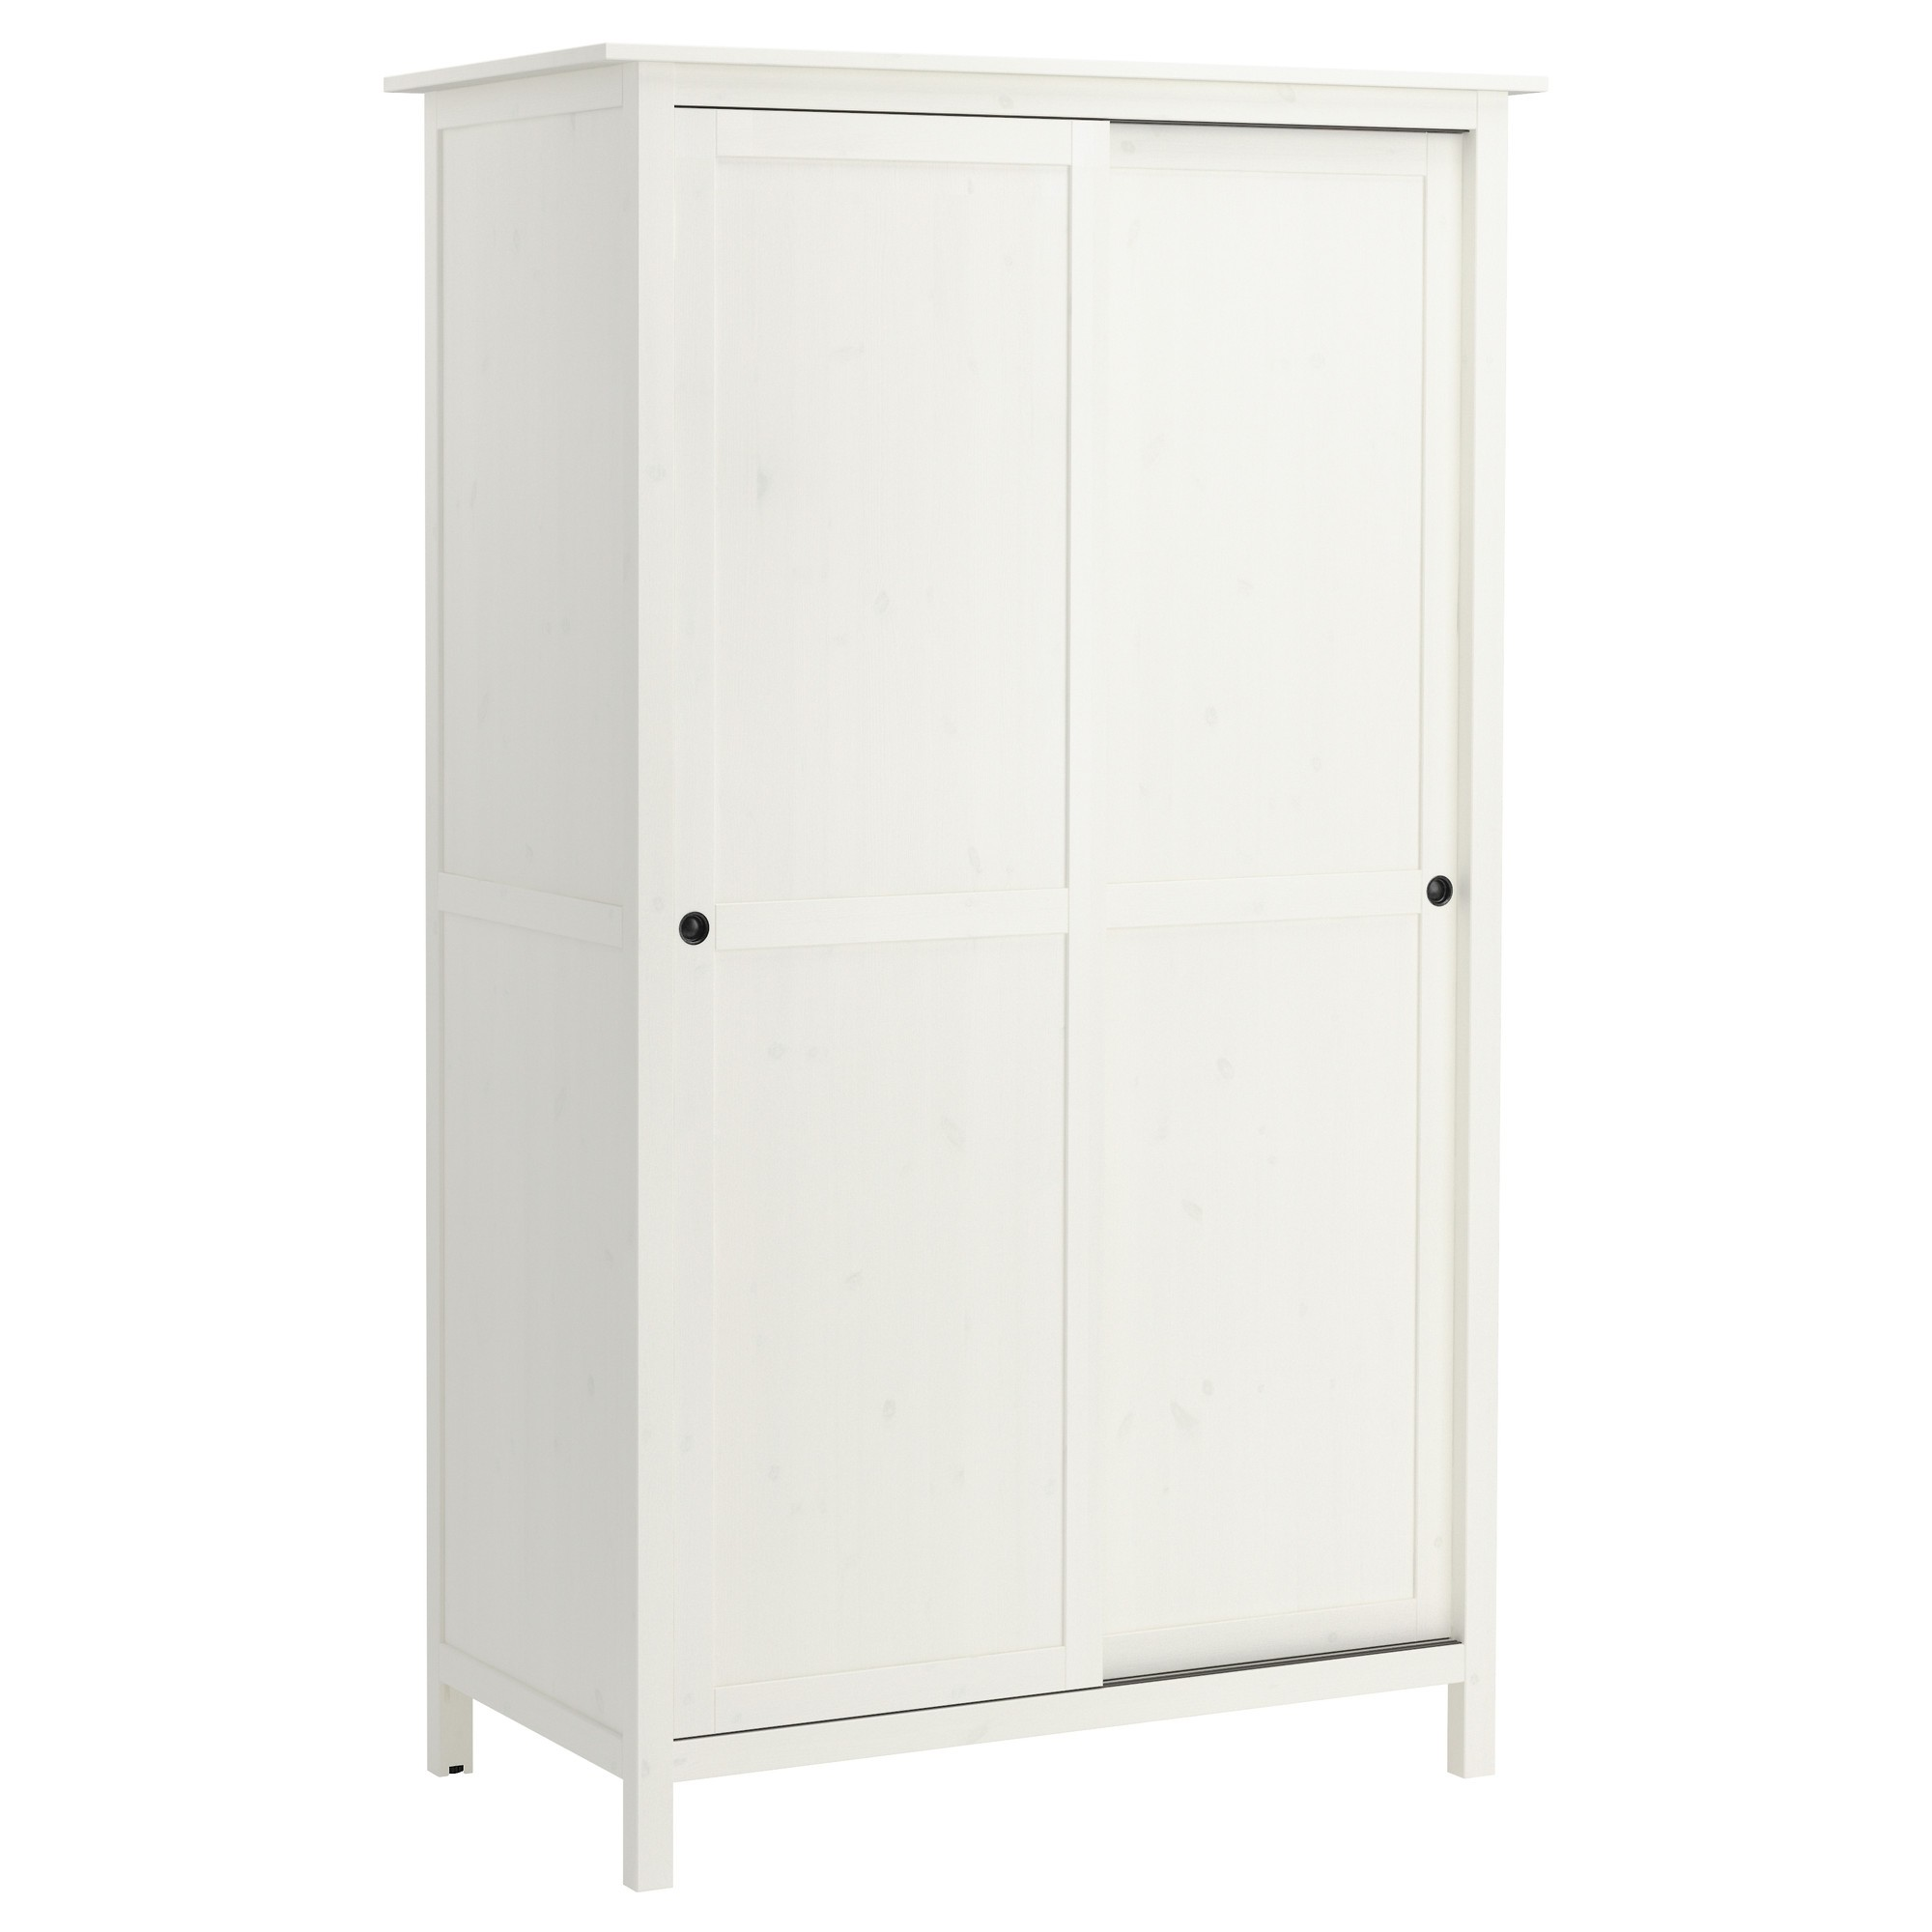 armoire 2 portes ikea cheap flocon armoire portes et tiroir with armoire 2 portes ikea armoire. Black Bedroom Furniture Sets. Home Design Ideas